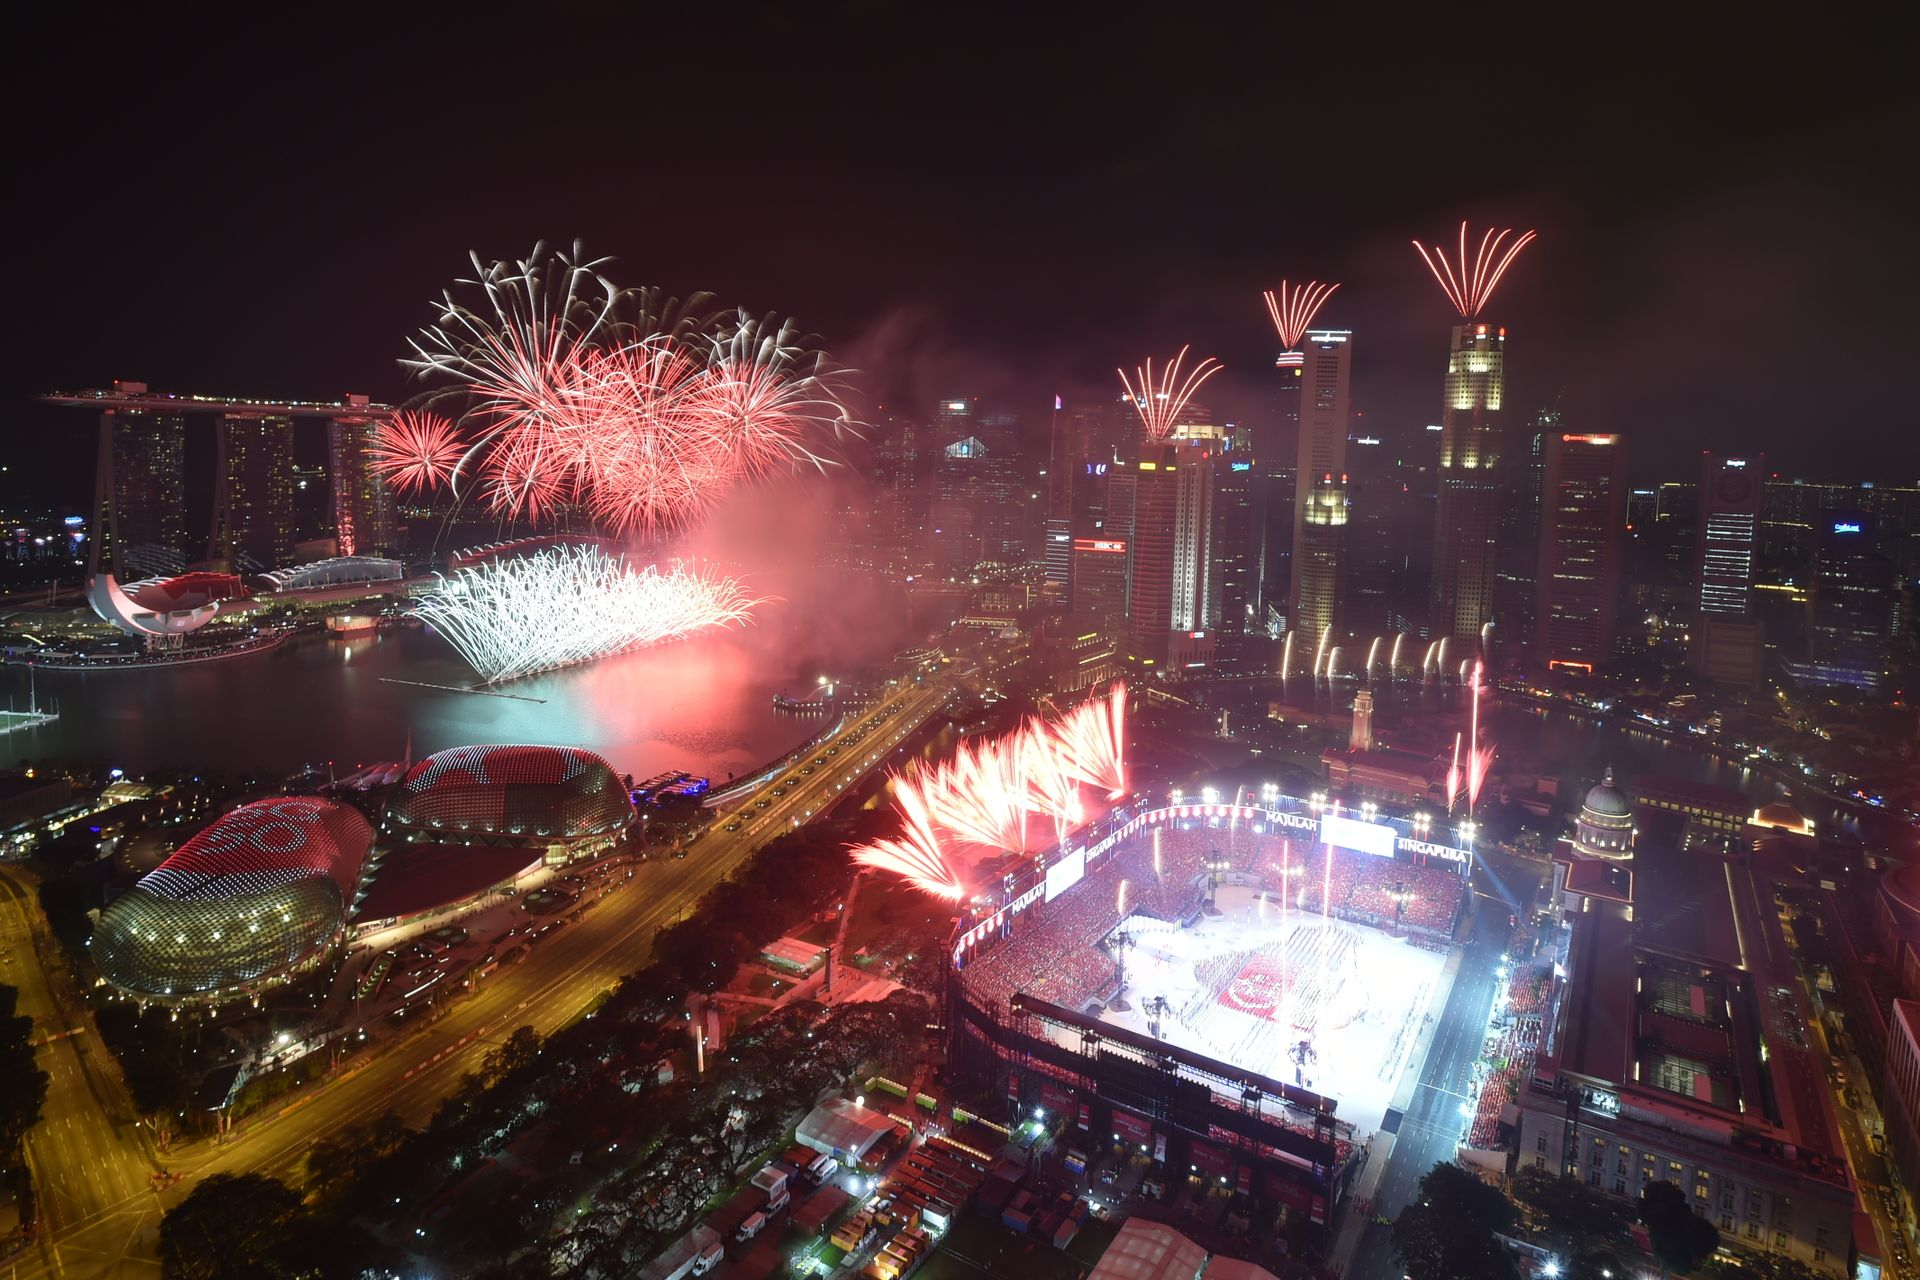 NDP 2019 to be held at the Padang